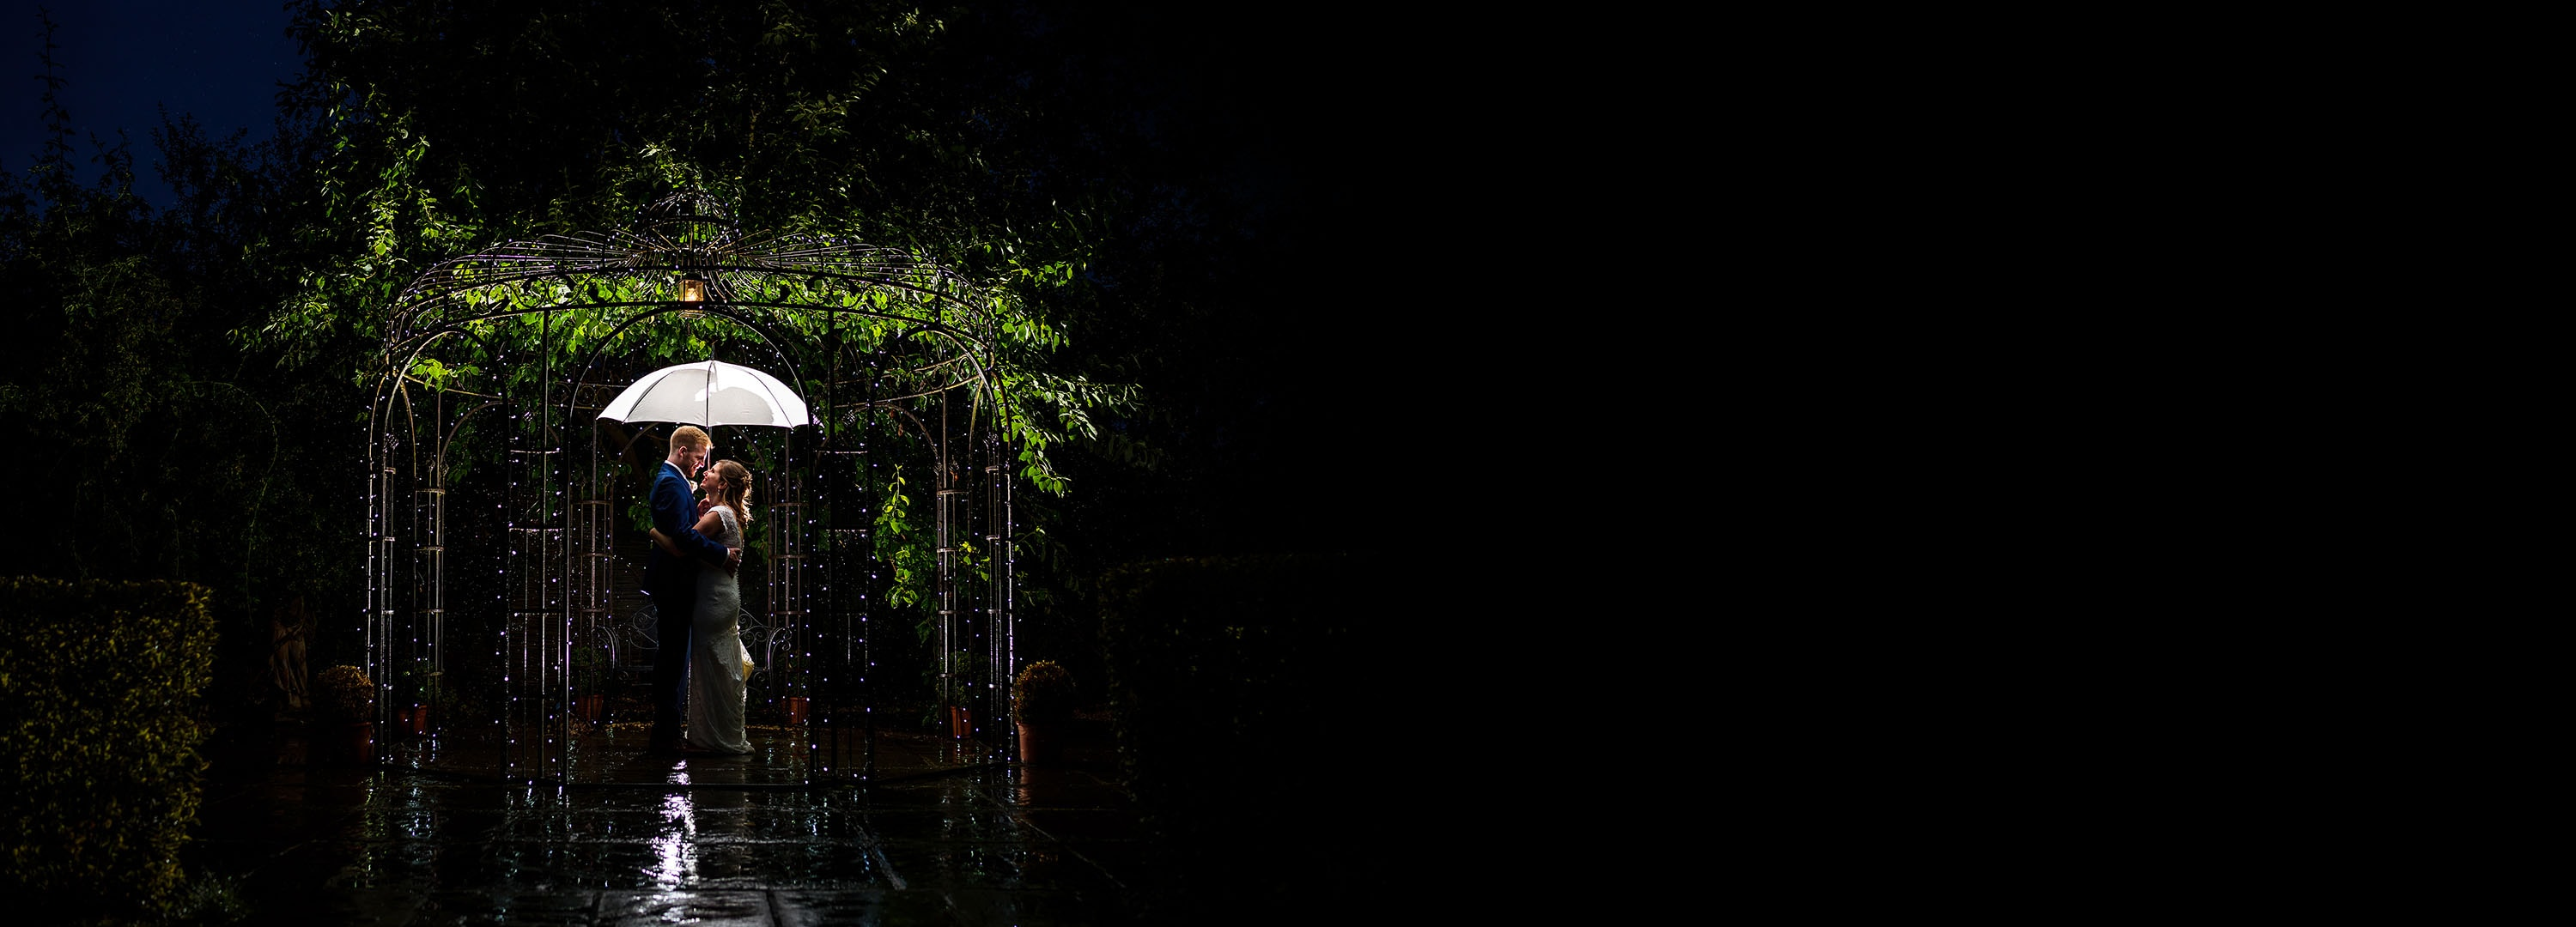 night time bride and groom portrait at wethele manor